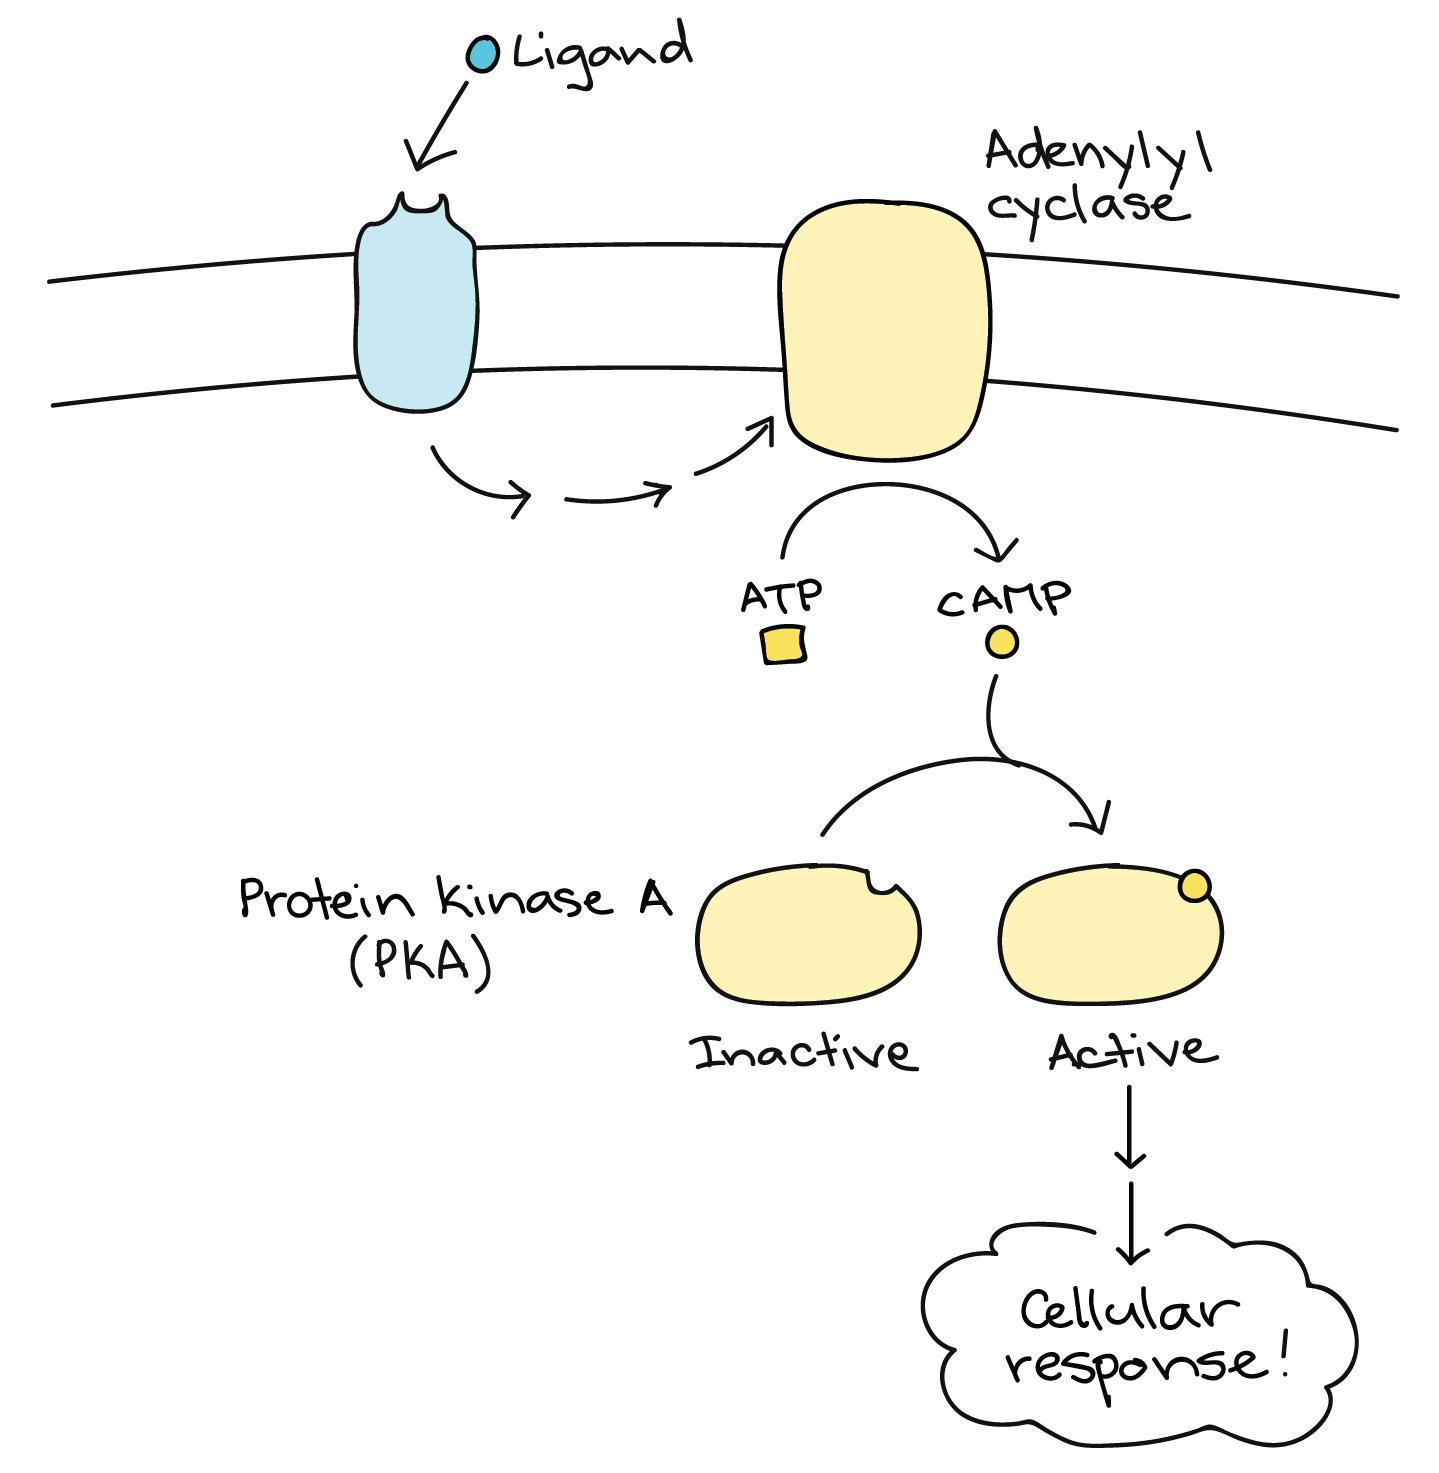 Signal Relay Pathways Cell Signaling Article Khan Academy - Basic http relay binding